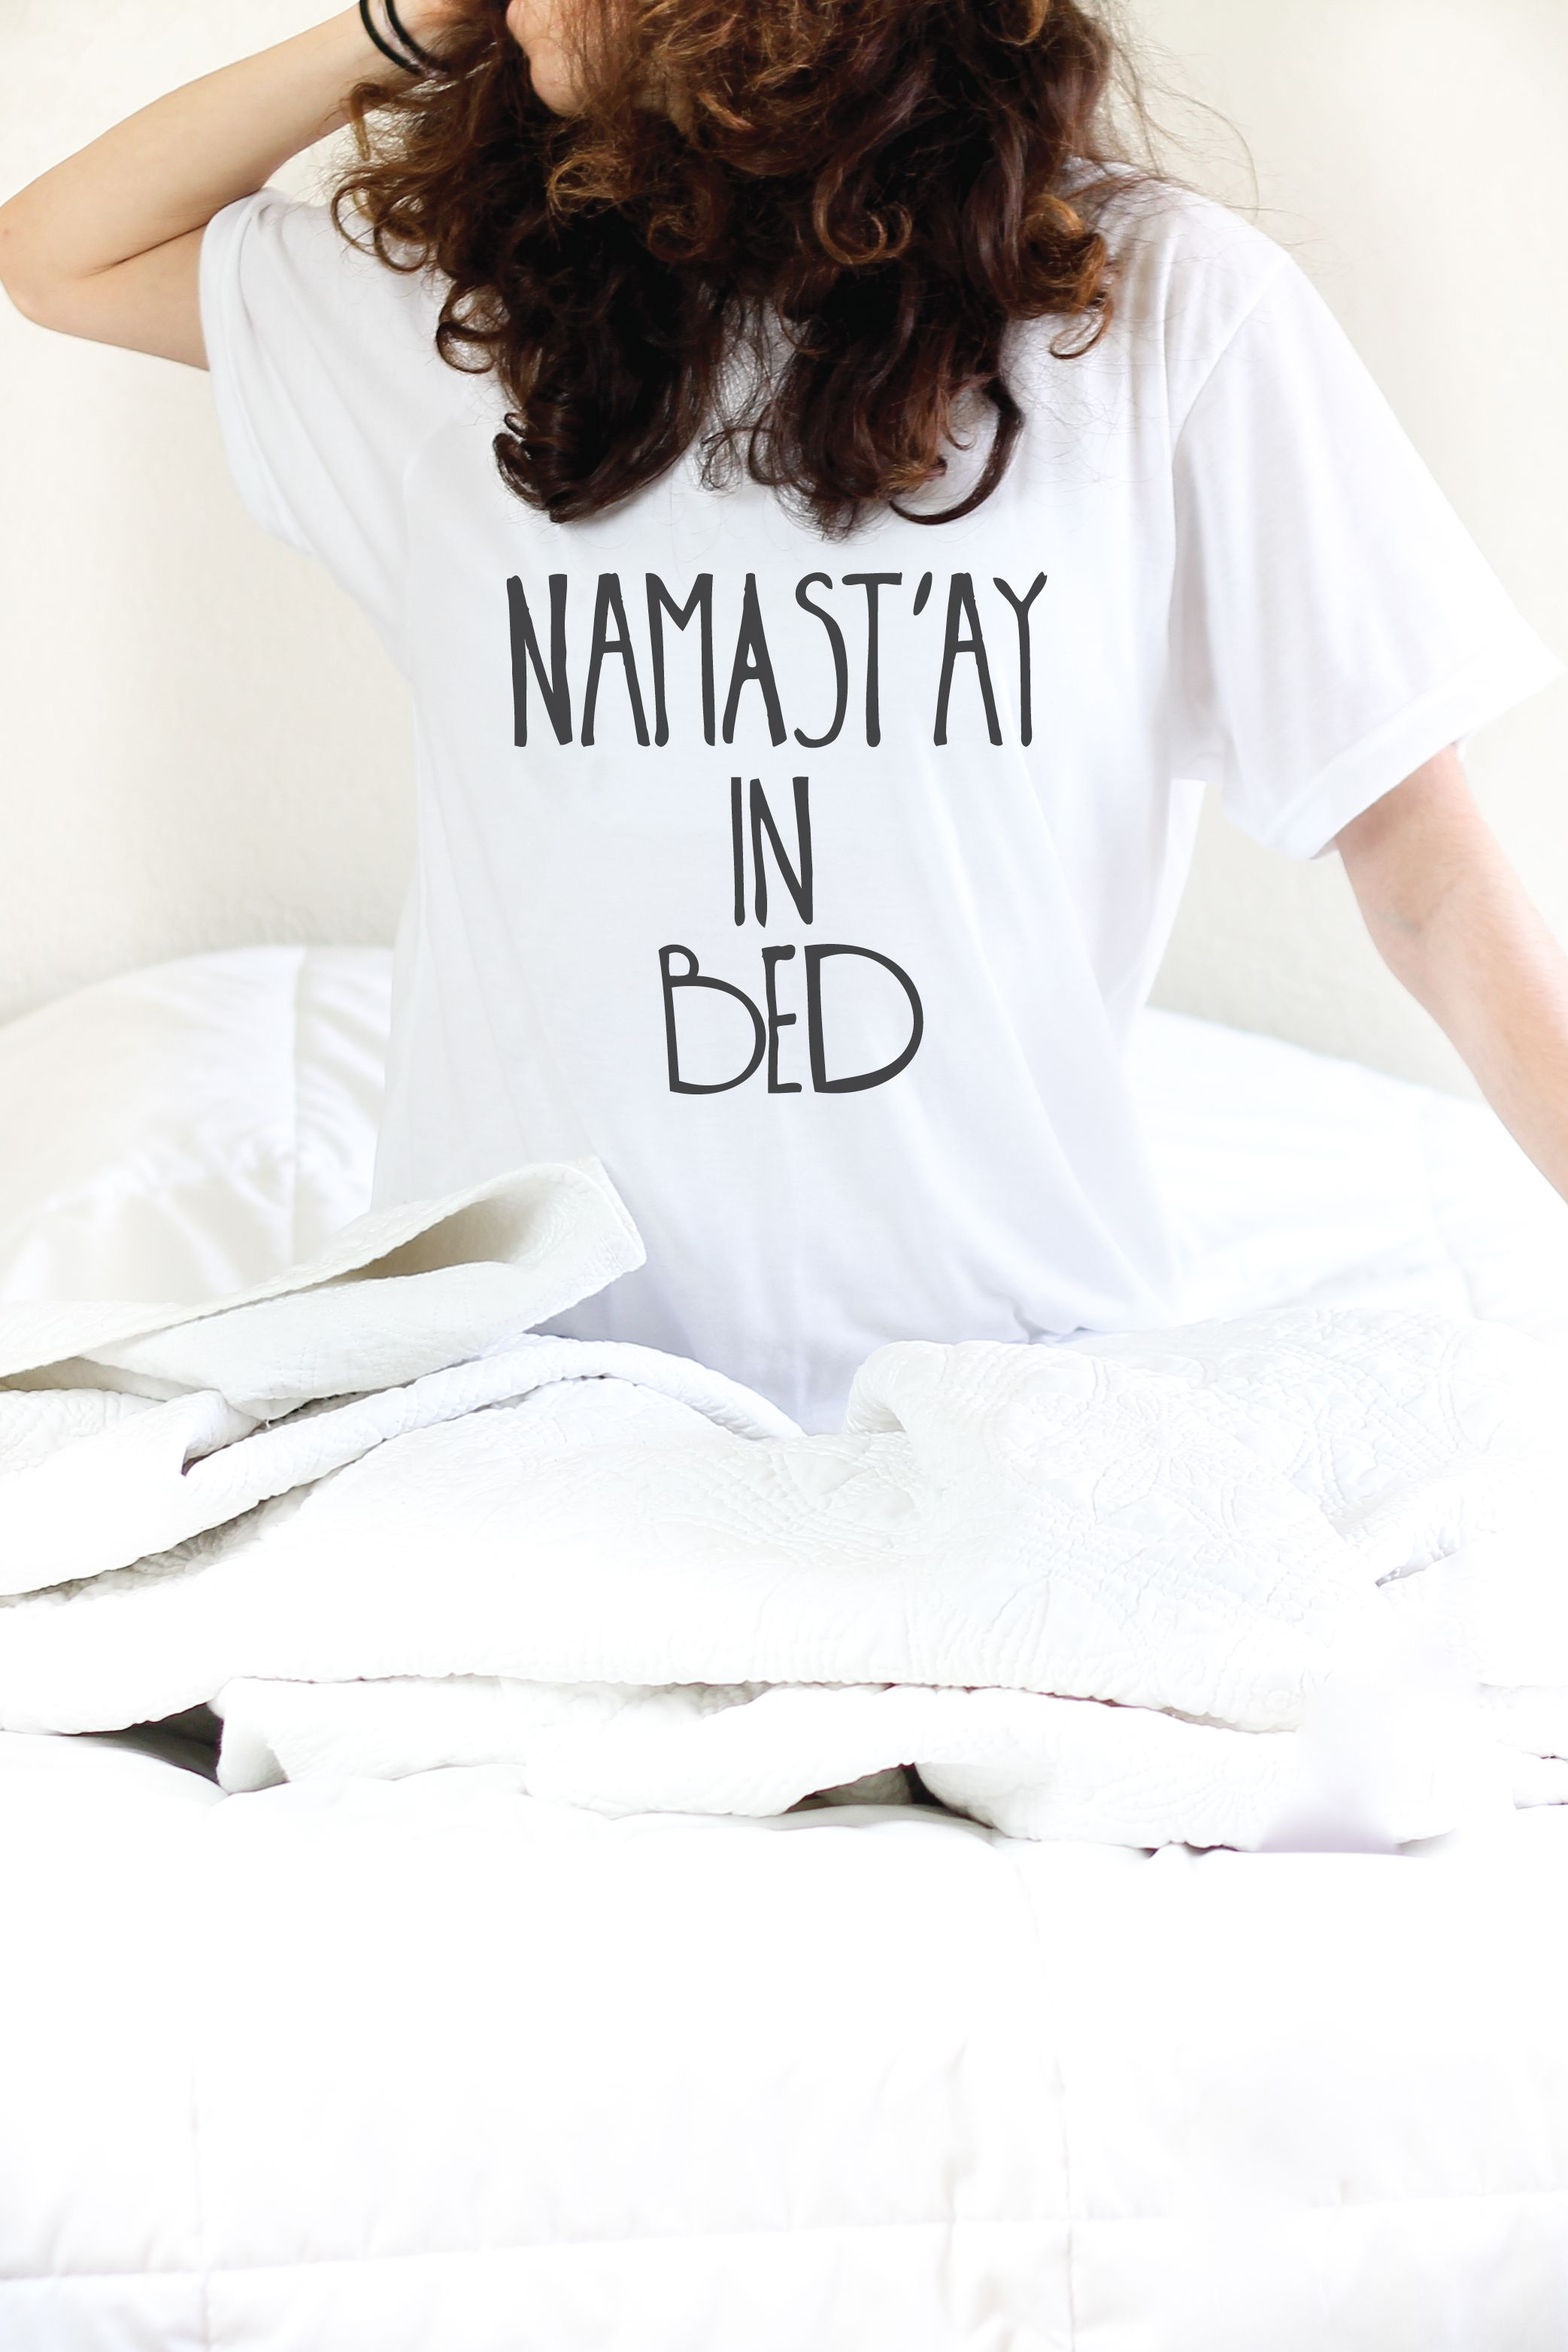 Namastay In Bed Whether you are looking for fun yoga shirts like this one  or some soulful vibed tops- this is your go to shop! ArimaDesigns.com 3f129b845